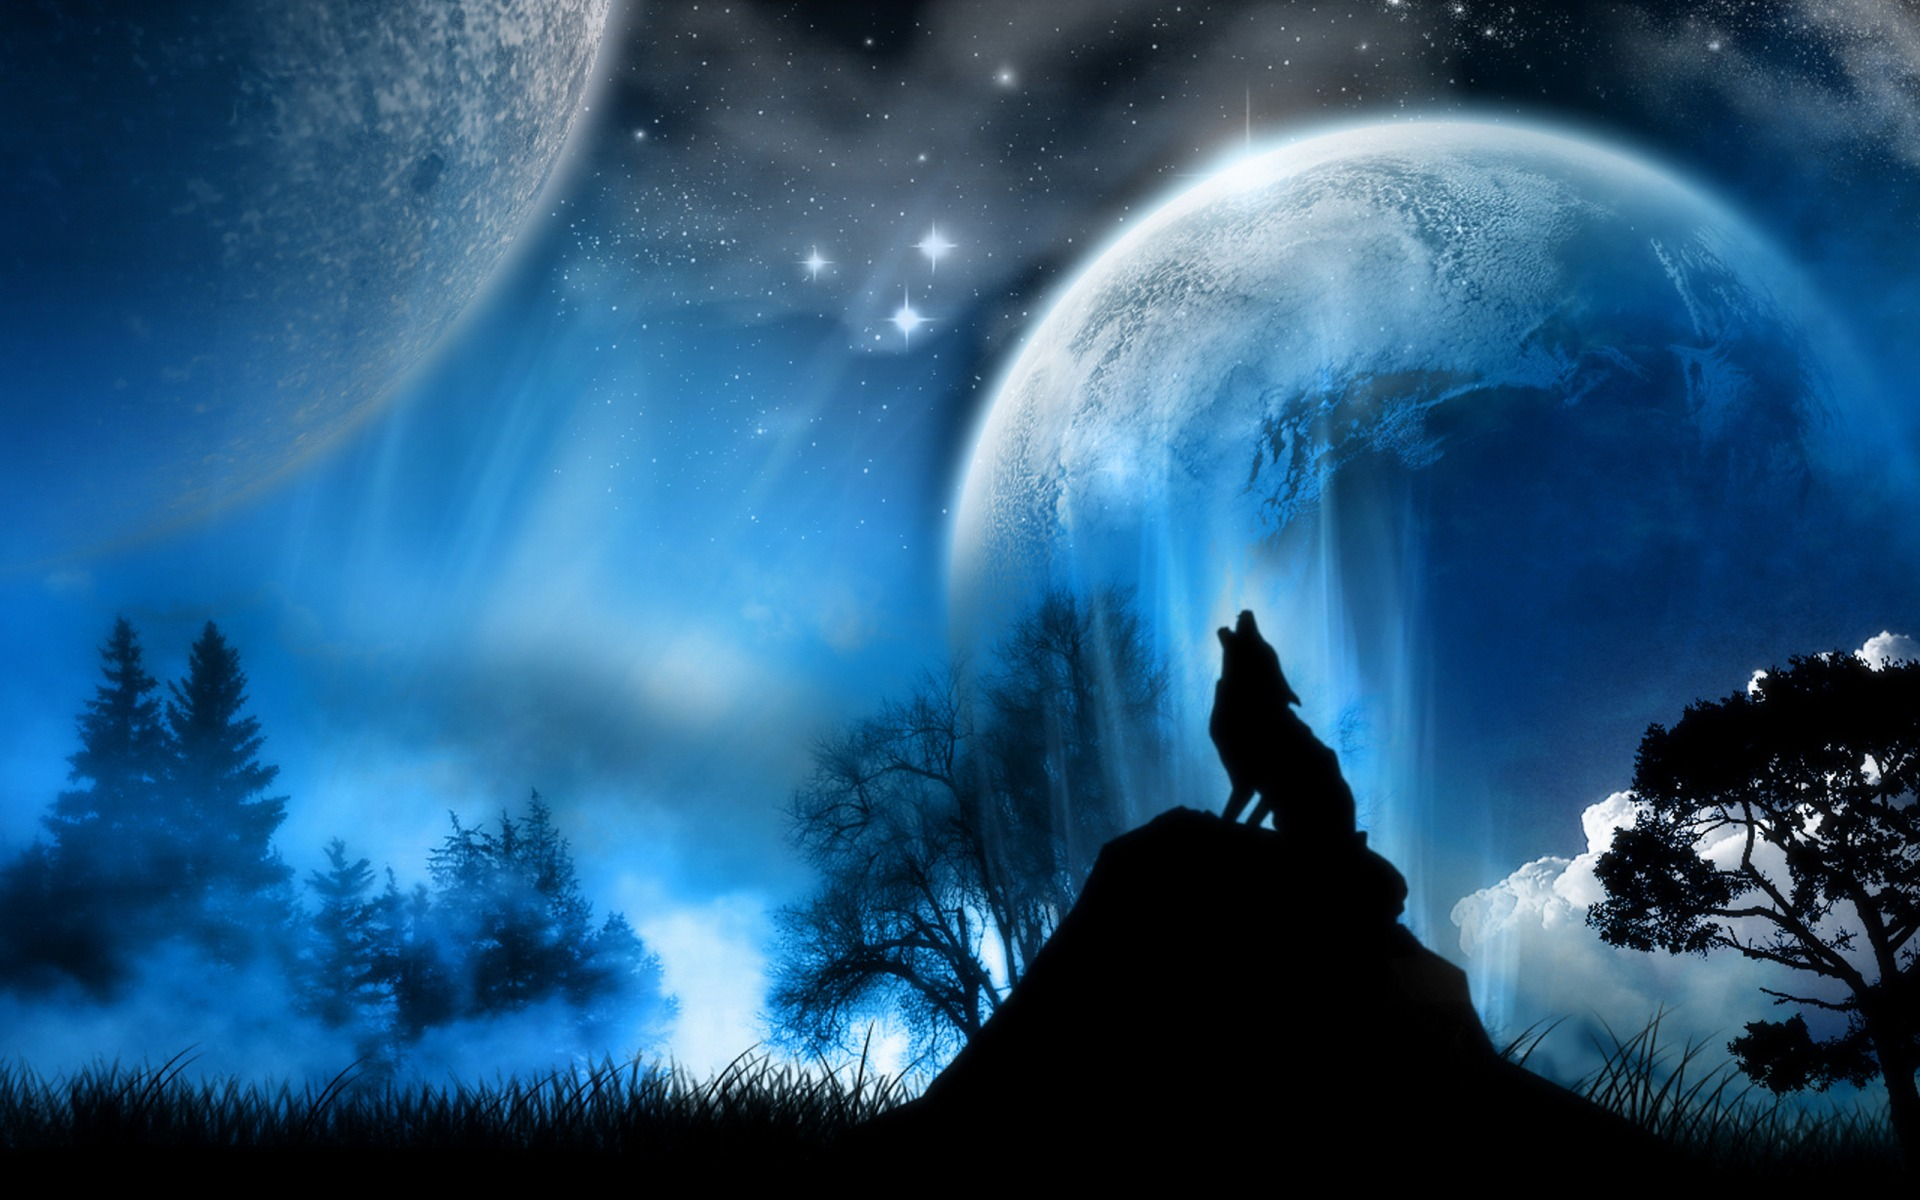 moon wolves background cool wallpaper images 1920x1200 1920x1200